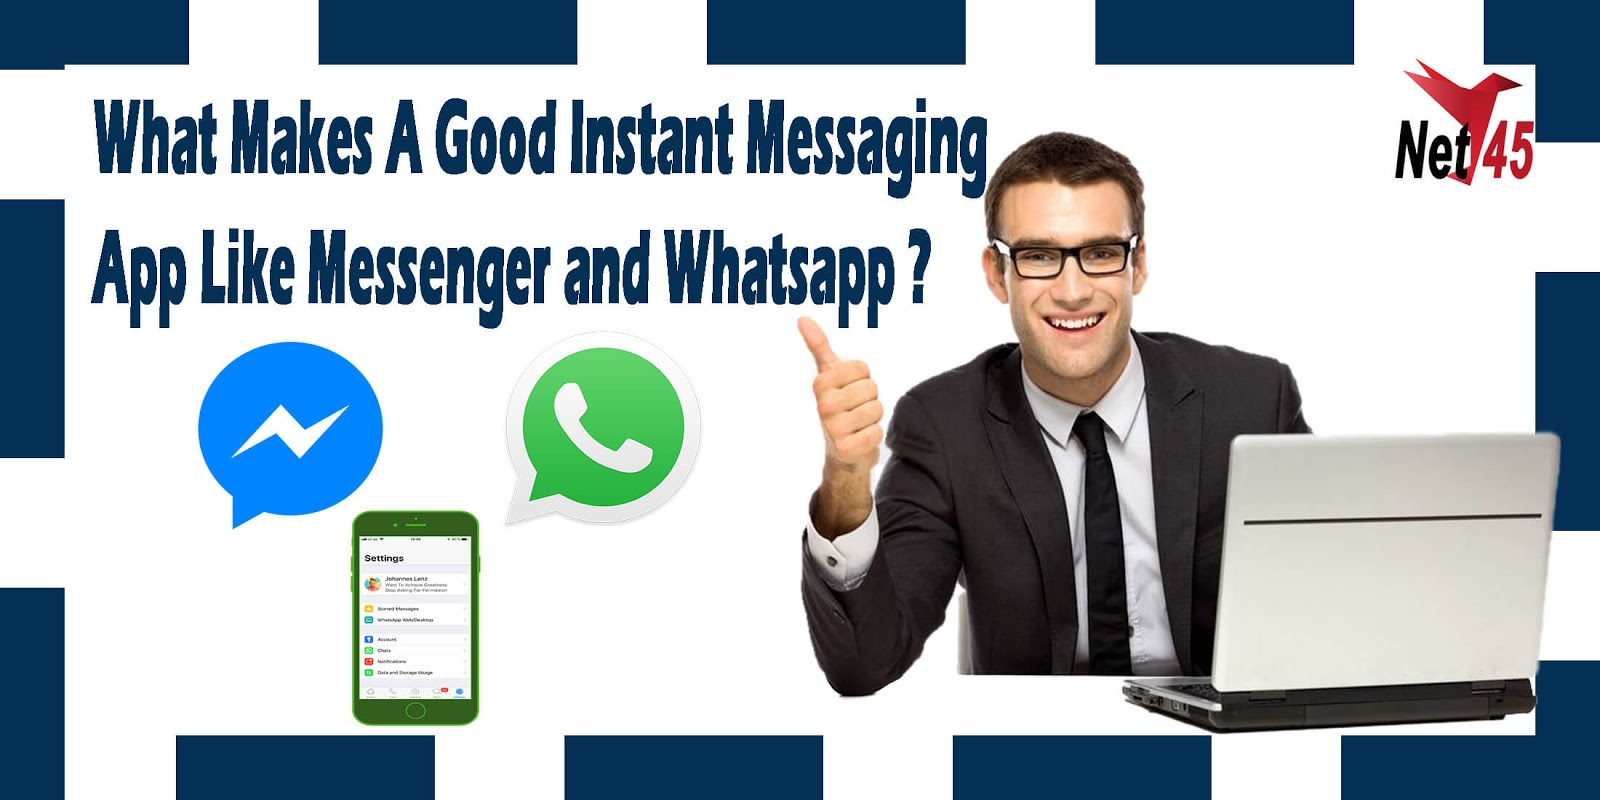 whatsapp,messenger,instant messaging,messaging app,instant messenging app,messaging,create your own messenger app like whatsapp and earn,facebook messenger,how to create your own messenger app like whatsapp,make messaging app like whats app in 10 minutes,make a chat app like whatsapp,all in one messaging app,build a chat app like whatsapp,create a chat app like whatsapp,message app,chat app